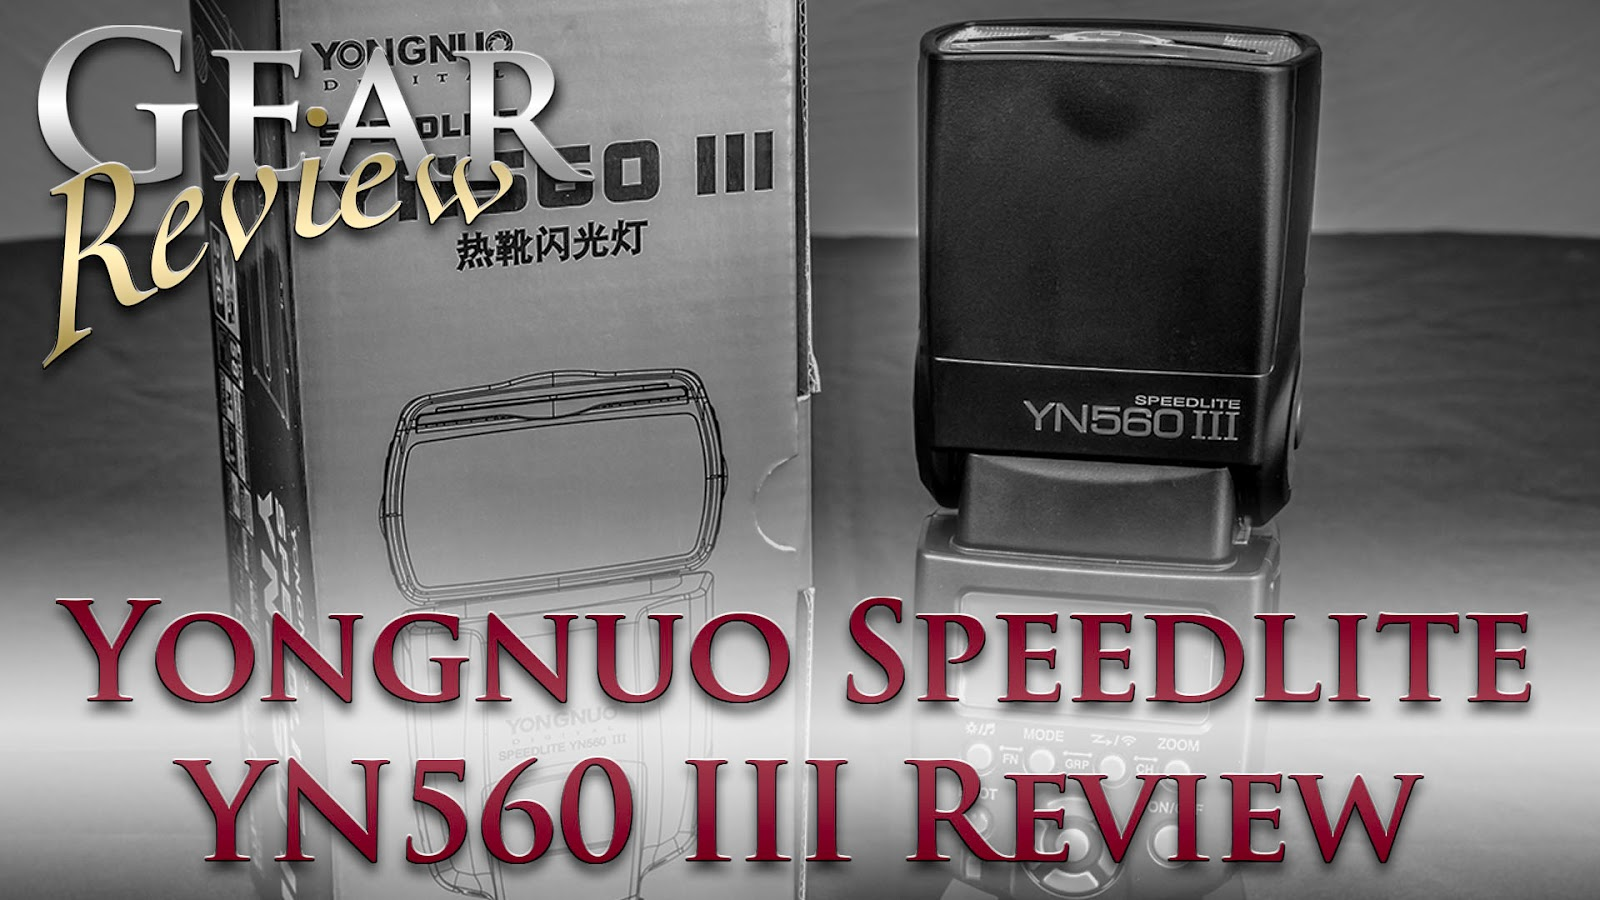 Yonguo Digital YN560 III Speedlite, Powerful Flash For Less Cash | Gear Review